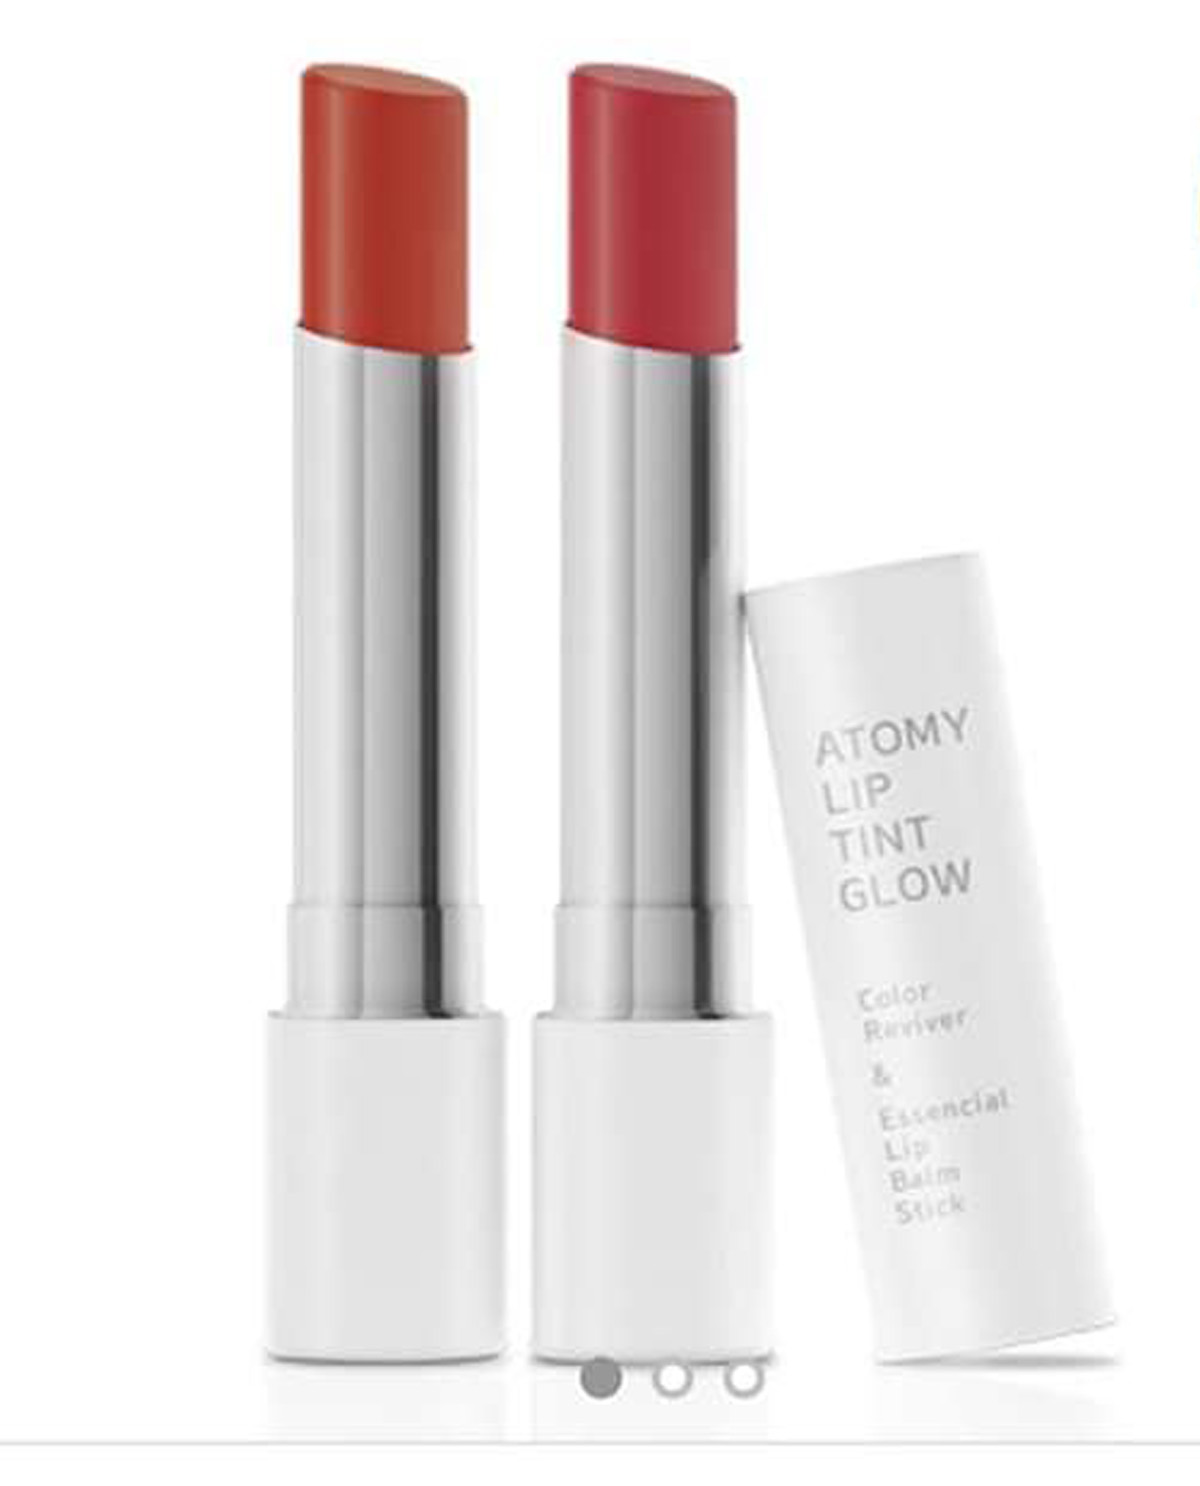 son-duong-moi-co-mau-atomy-lip-tint-glow